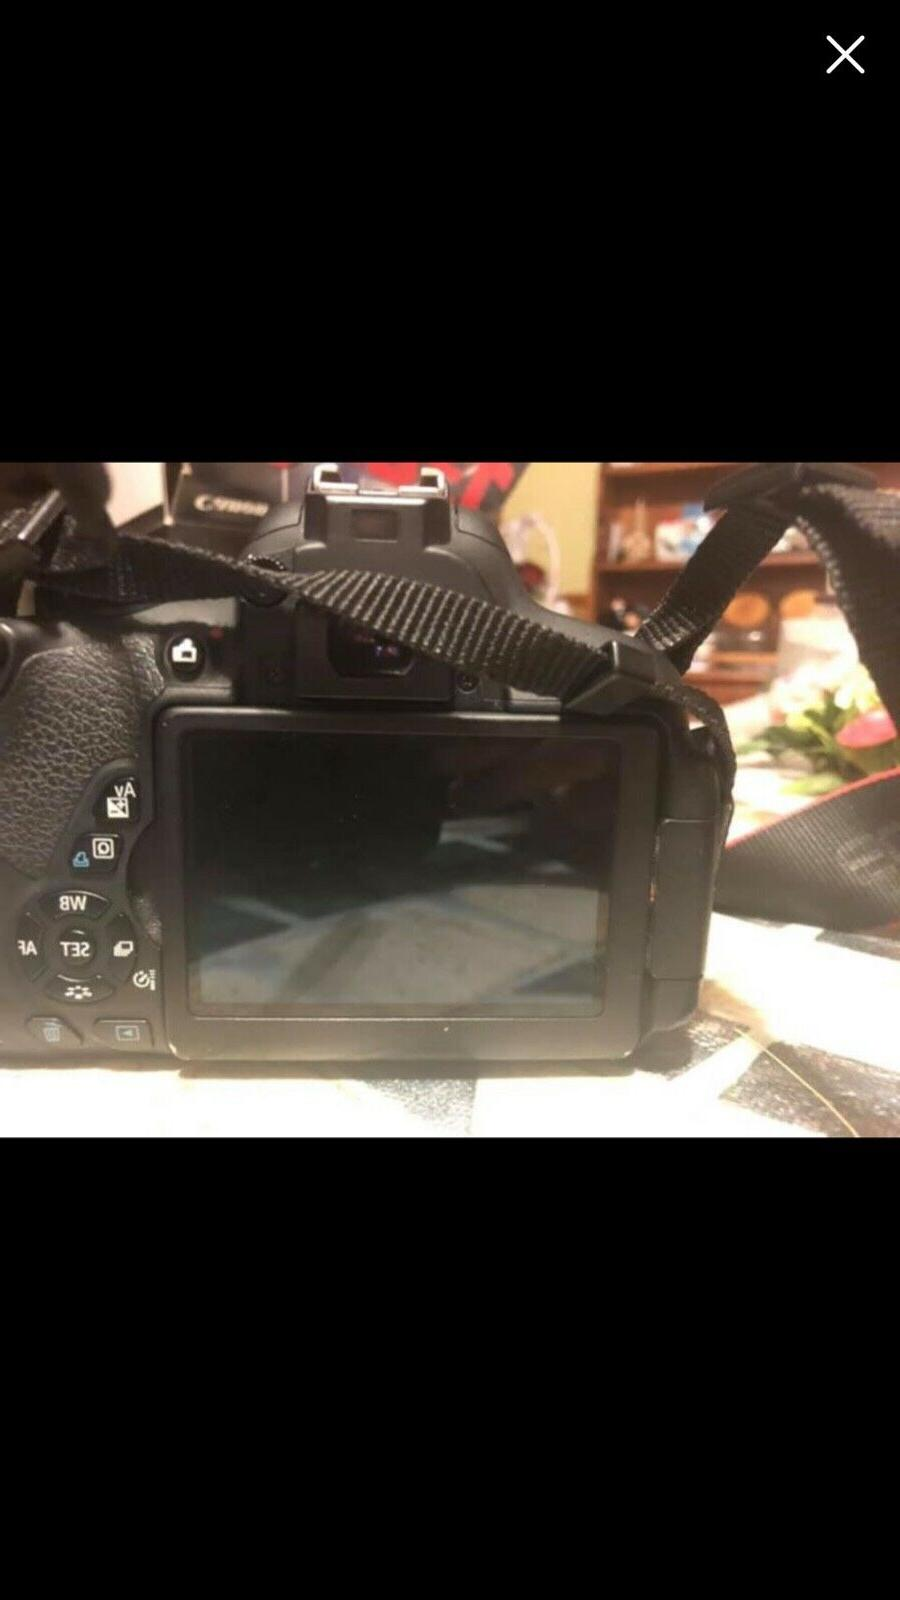 Canon T5i Camera With Lens, Box, Booklet